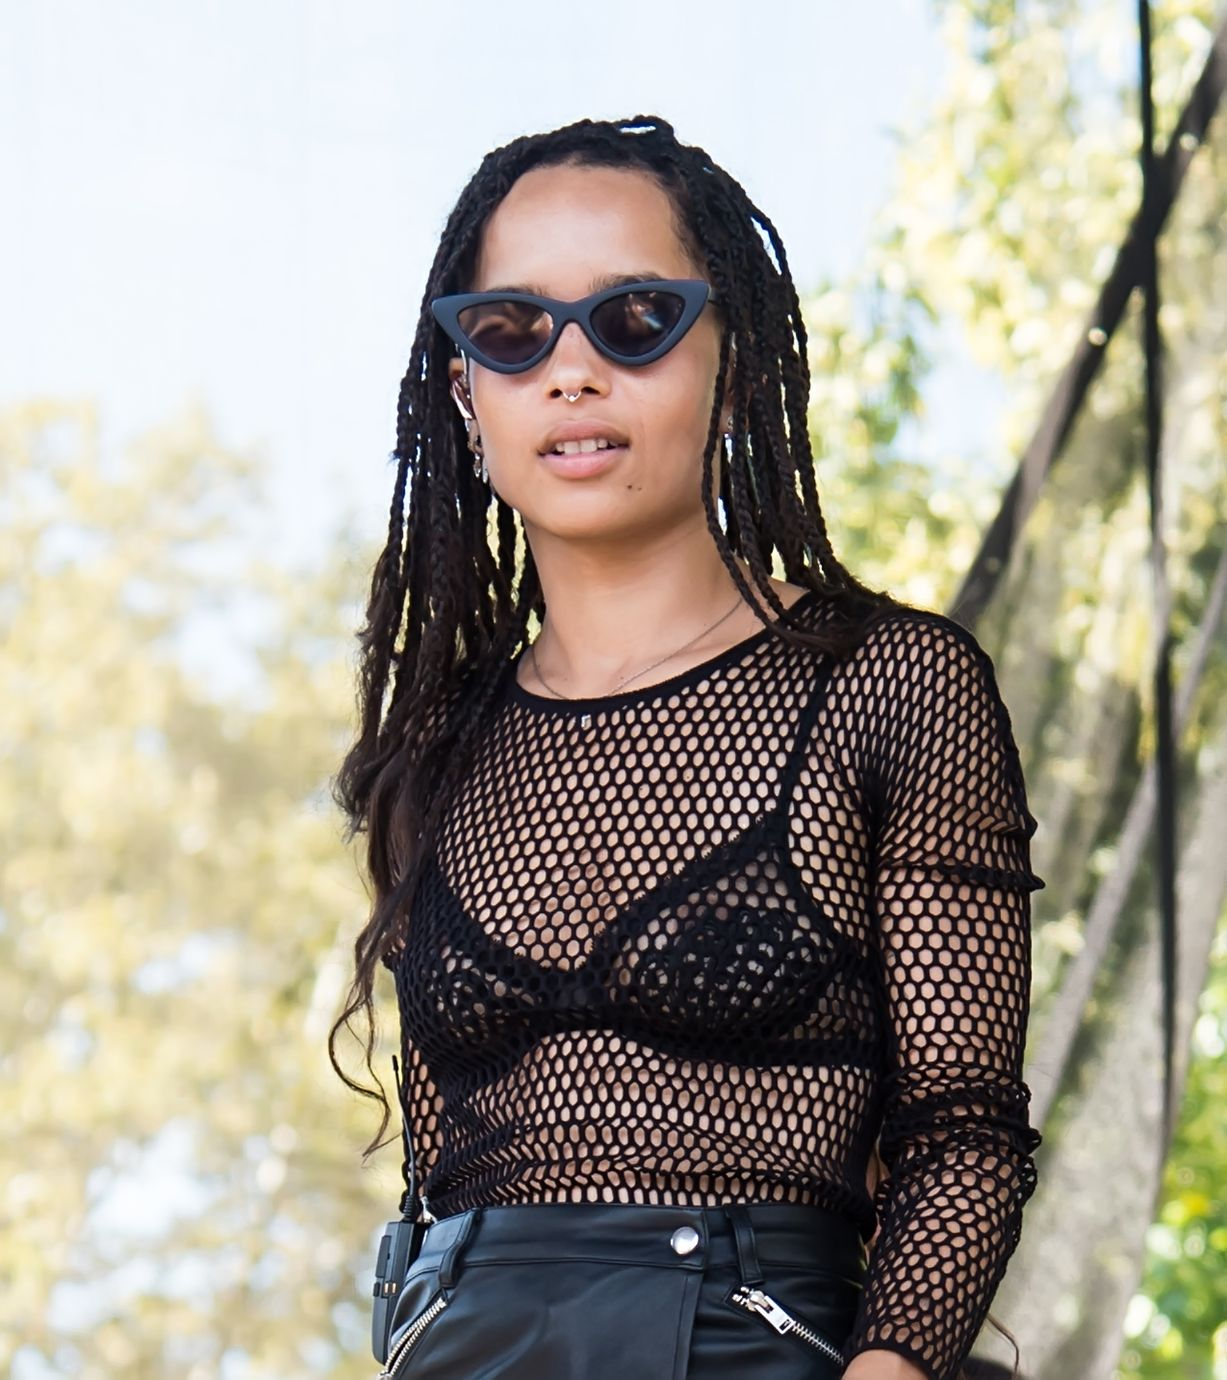 zoe-kravitz-see-through-bra-05